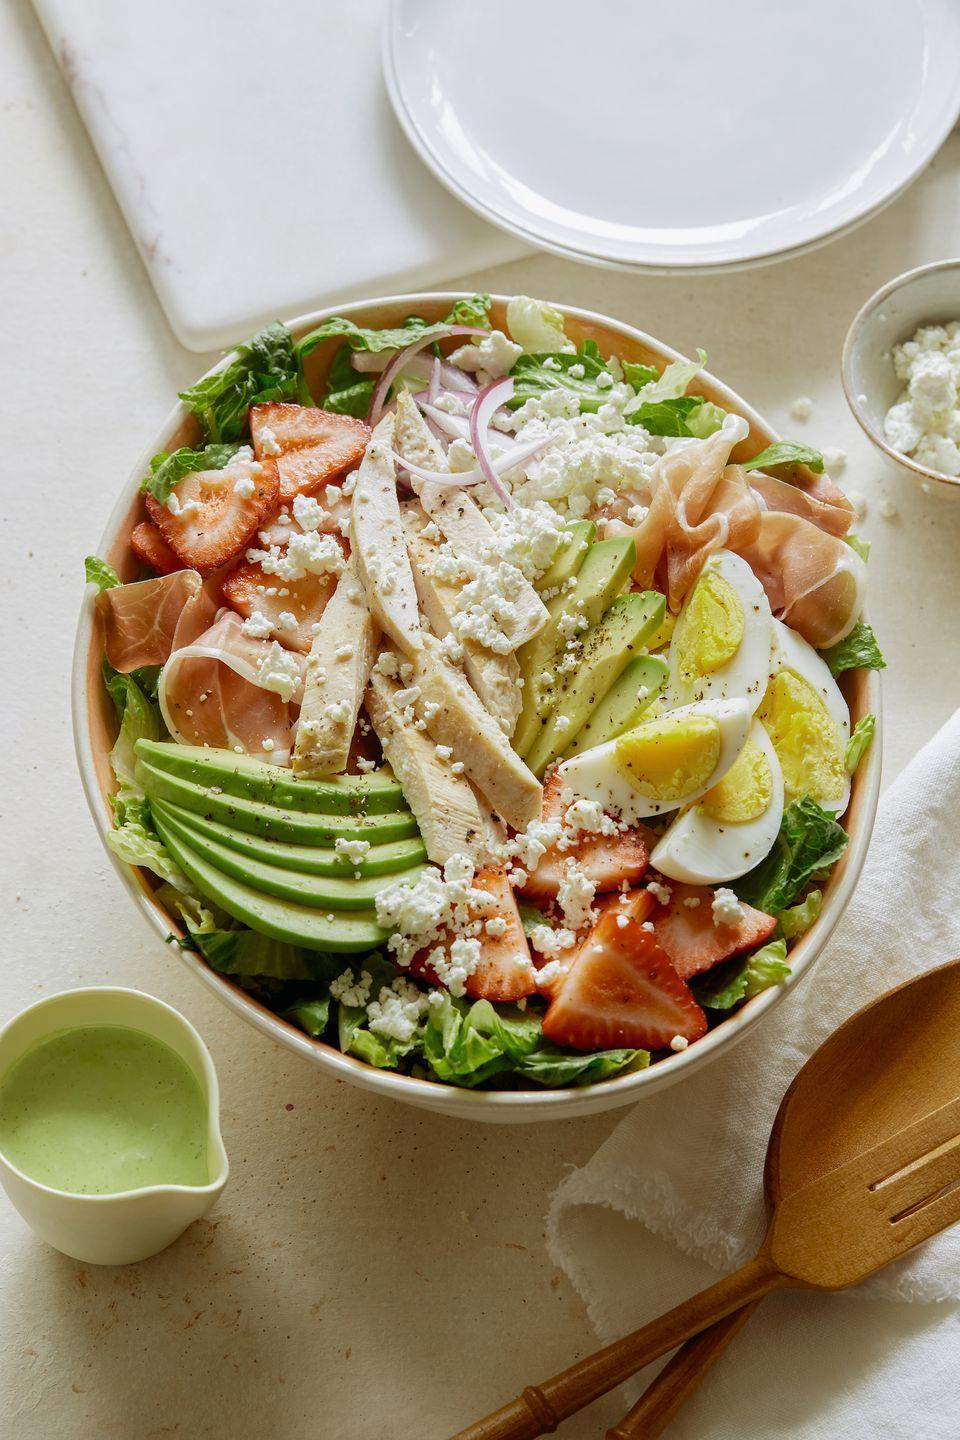 "<p>Strawberry salads forever.</p><p>Get the recipe from <a href=""https://www.delish.com/cooking/recipe-ideas/recipes/a53317/strawberry-cobb-salad-recipe/"" rel=""nofollow noopener"" target=""_blank"" data-ylk=""slk:Delish"" class=""link rapid-noclick-resp"">Delish</a>.</p>"